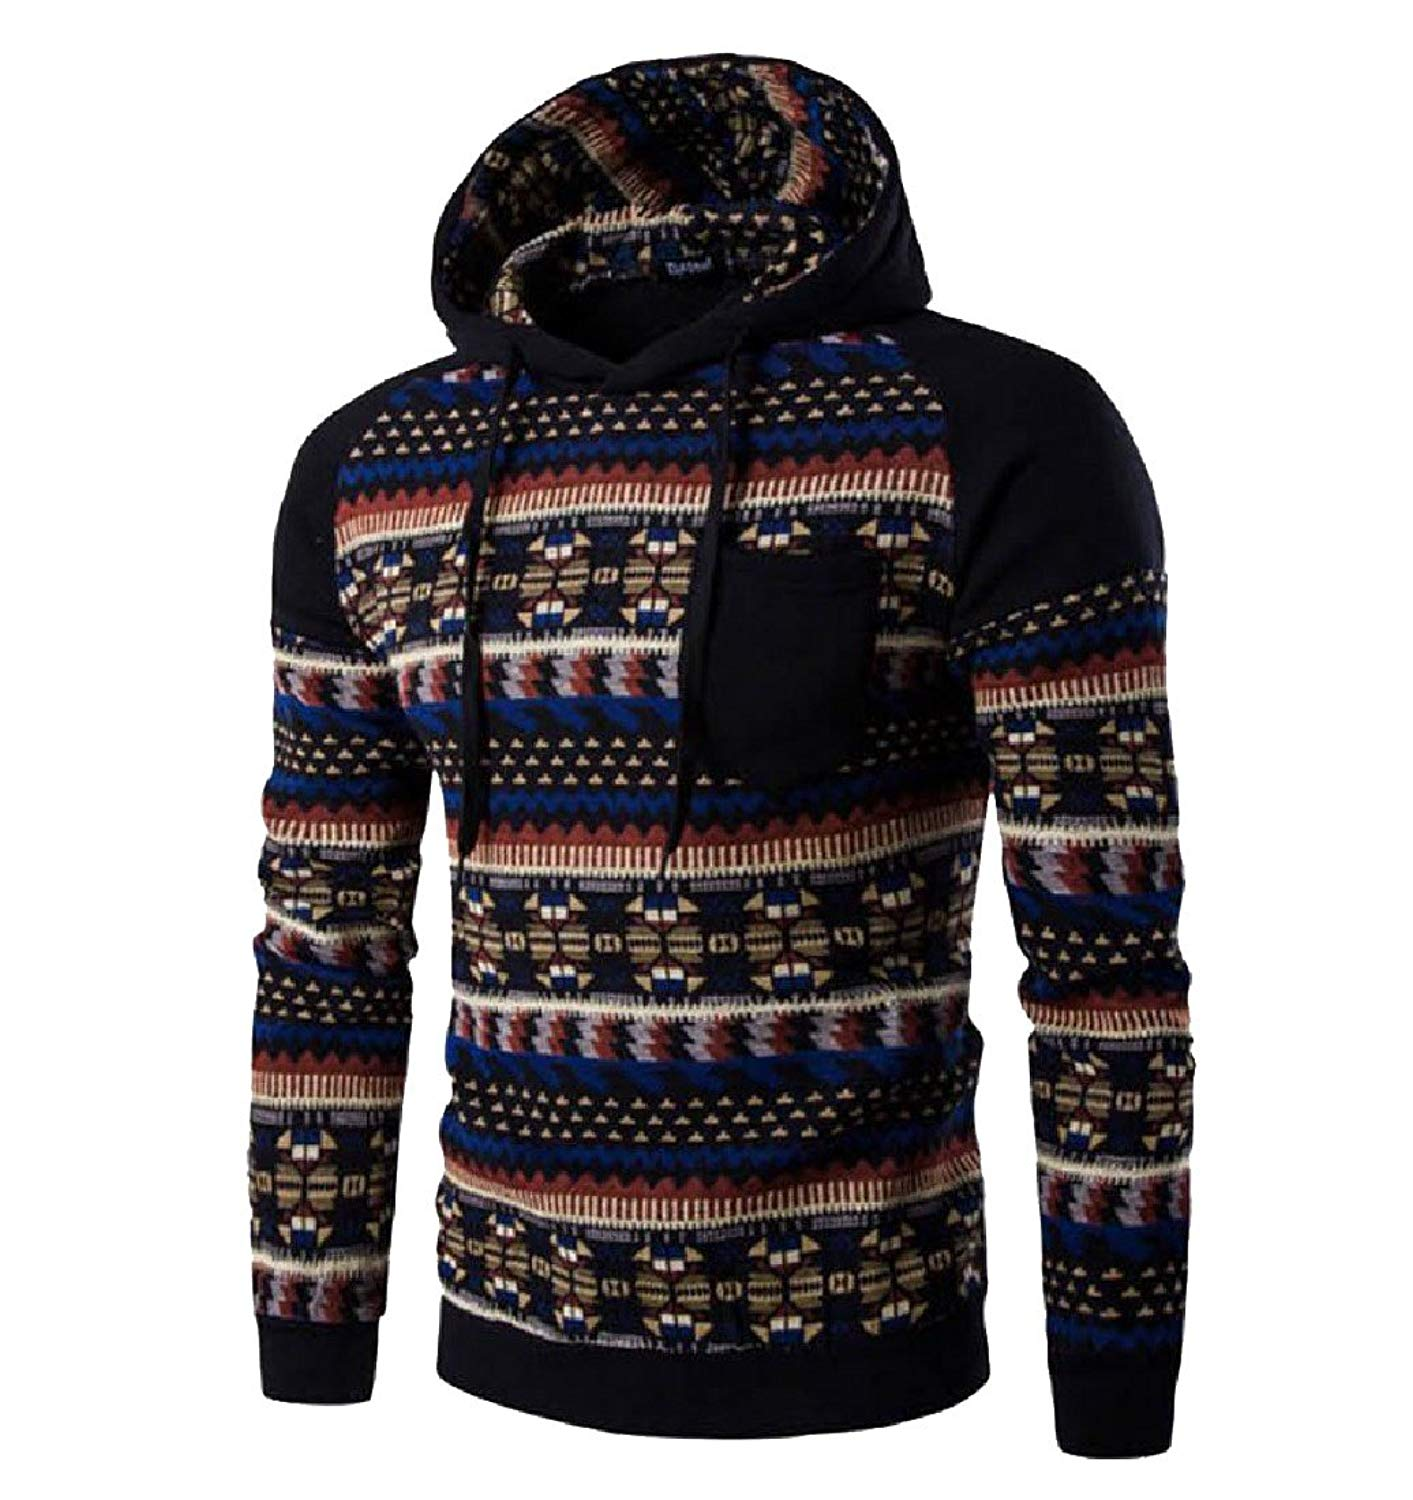 Abetteric Mens Long Sleeve Hooded Hoodies Splice Color Outerwear Tops